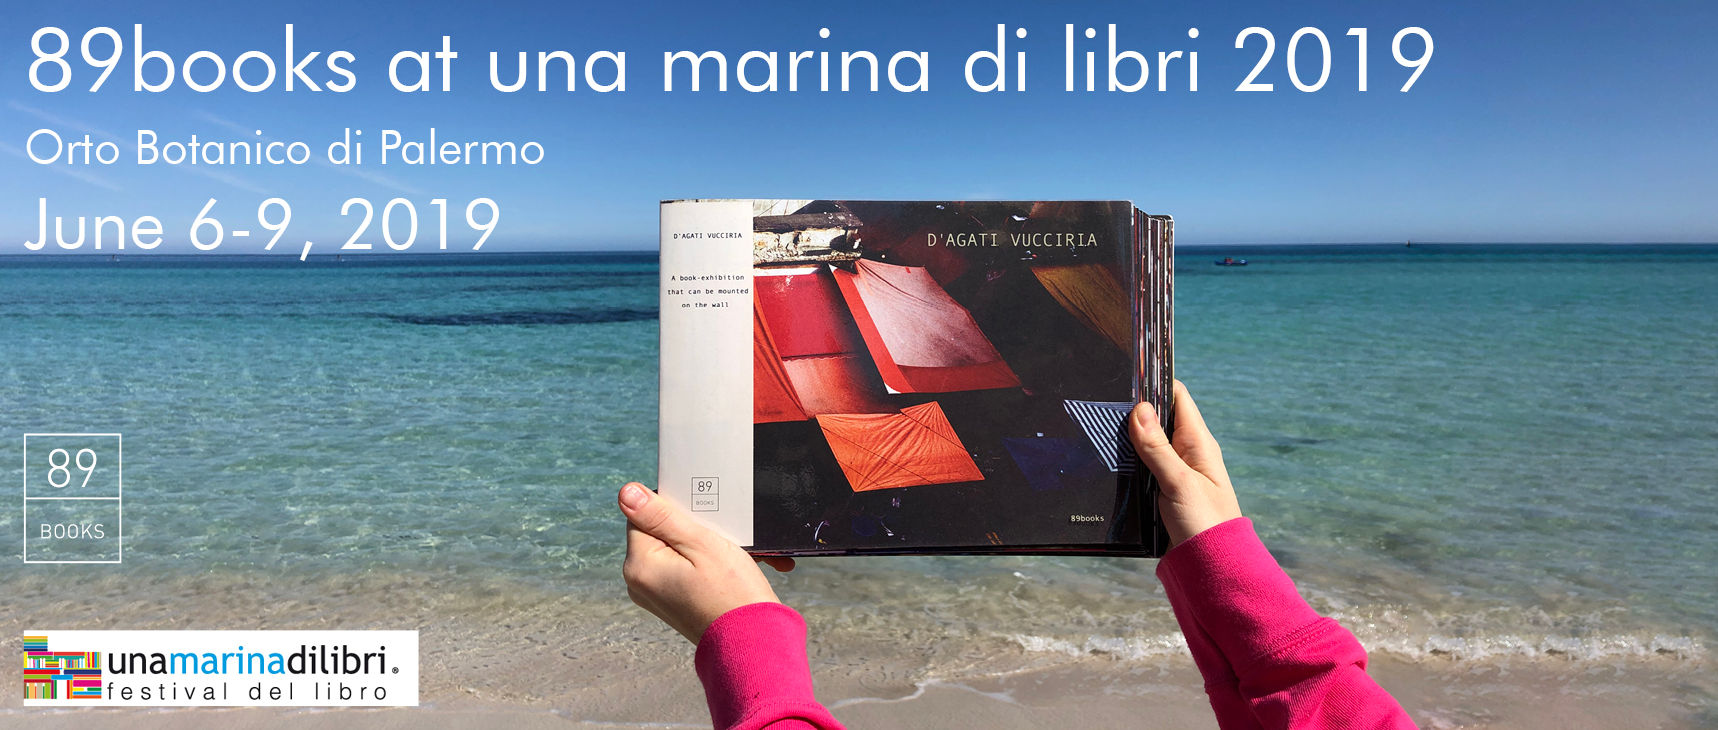 89books at Una marina di libri 2019